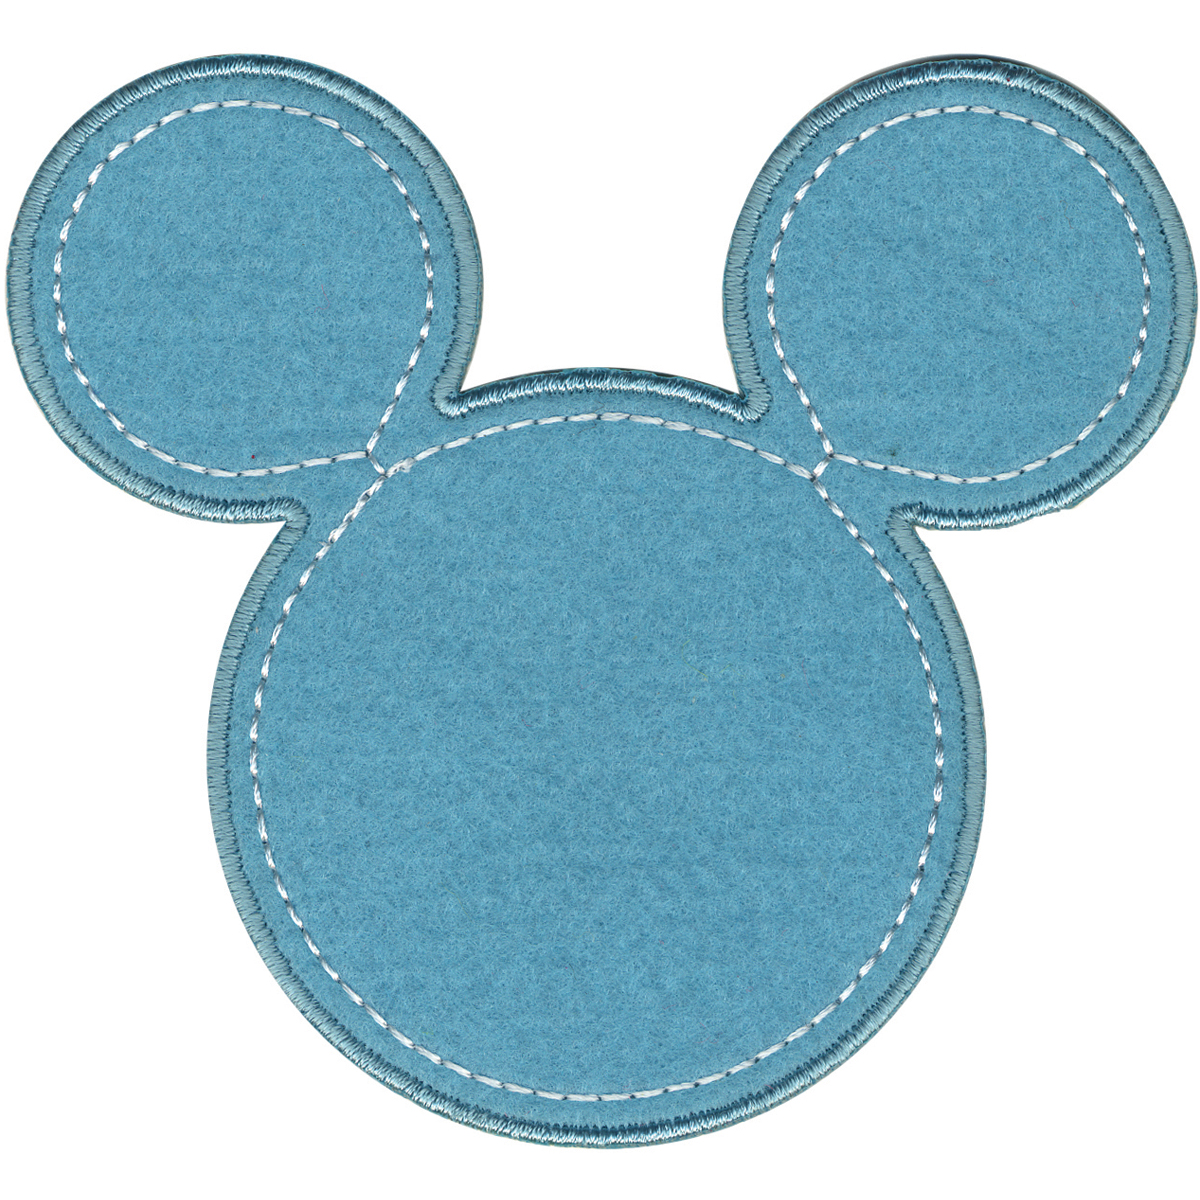 Disney Mickey Mouse Mickey Blue Silhouette Iron-On Applique